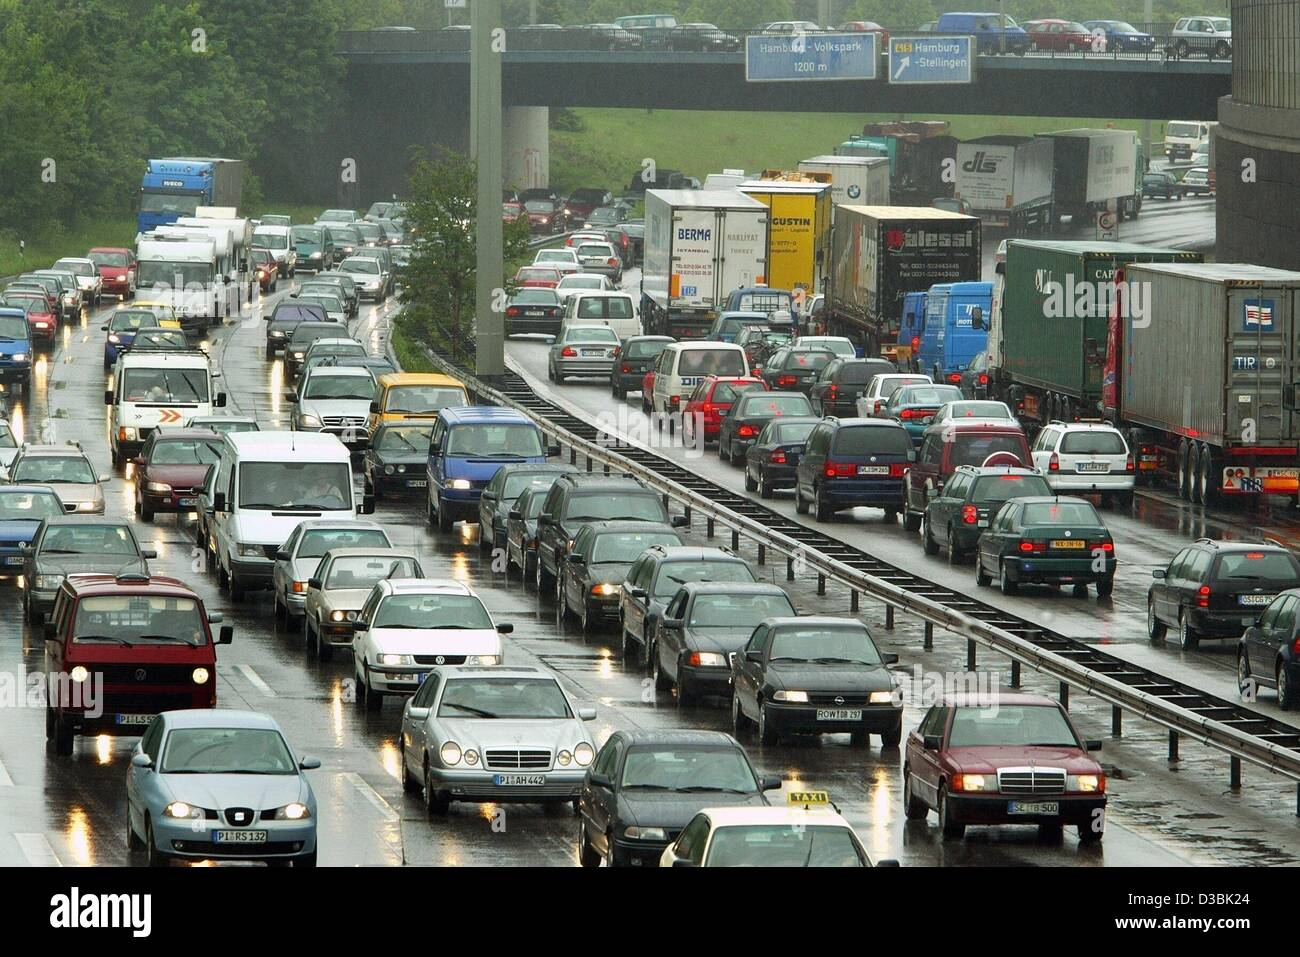 stuck in traffic stock photos stuck in traffic stock images alamy. Black Bedroom Furniture Sets. Home Design Ideas